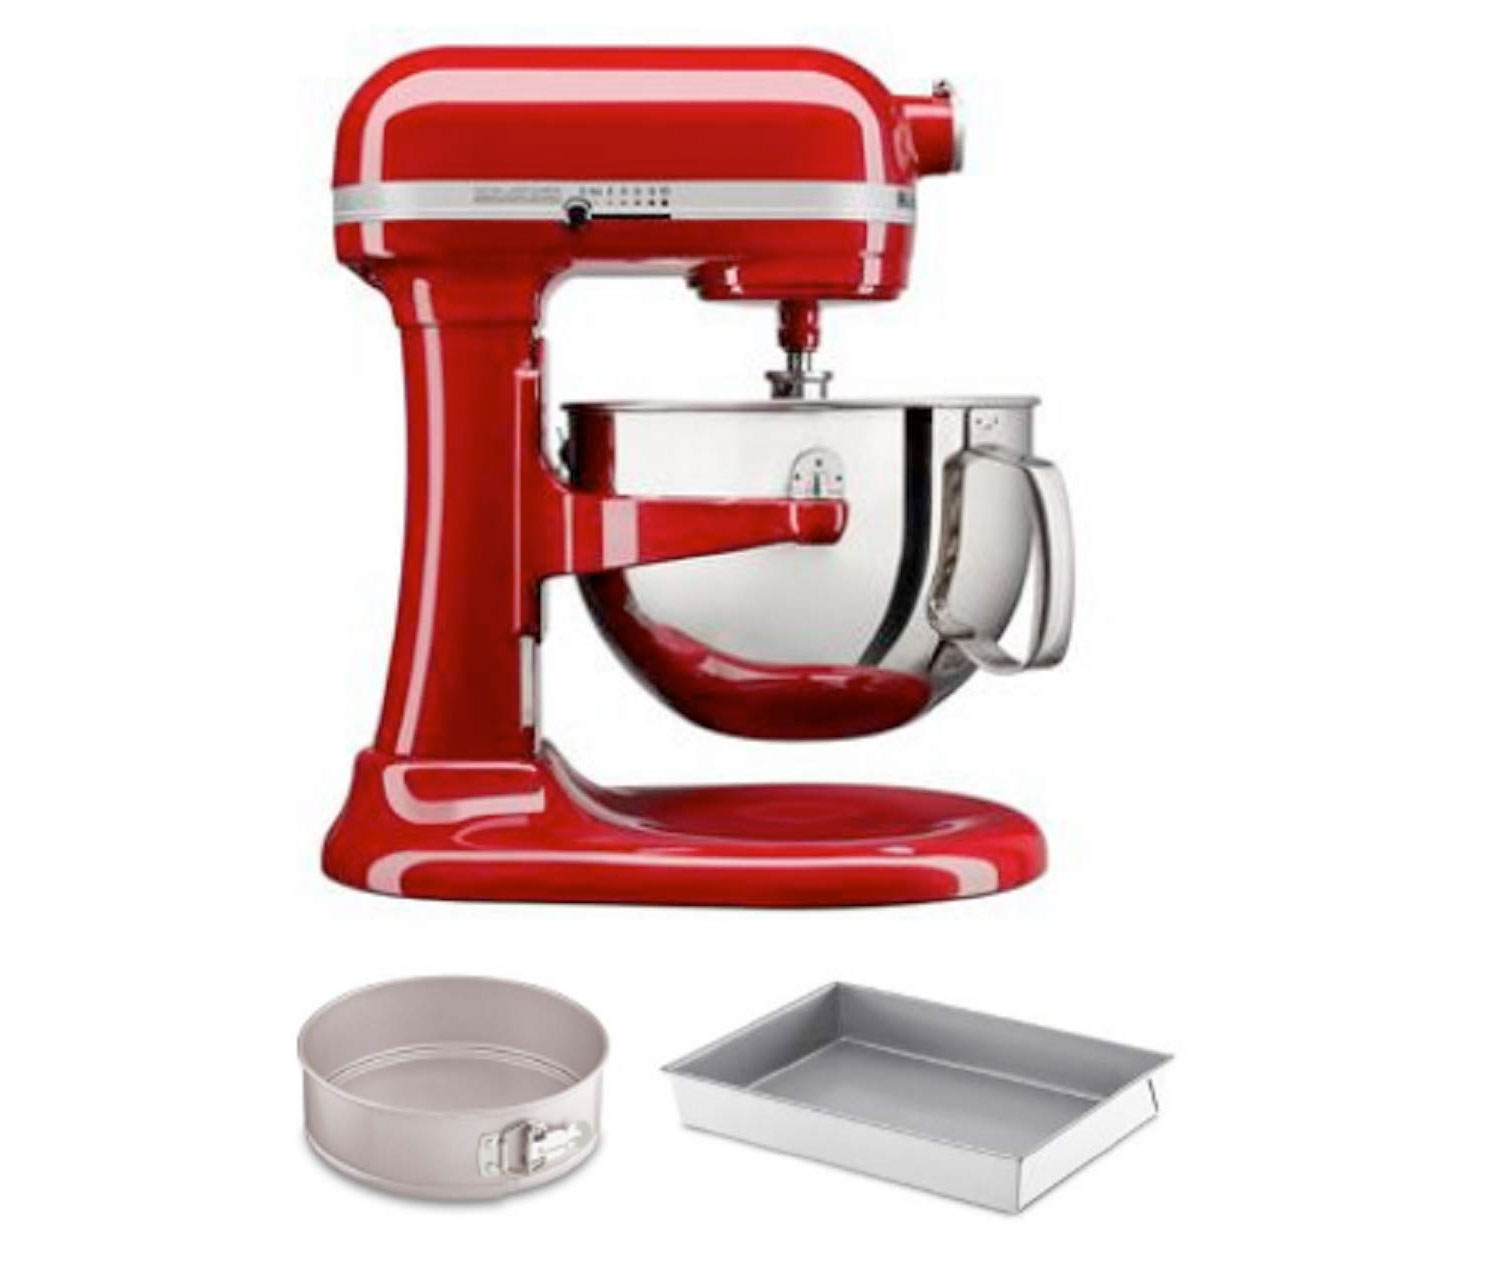 Amazon:KitchenAid 6 Quart Bowl Lift Stand Mixer只賣$317.99